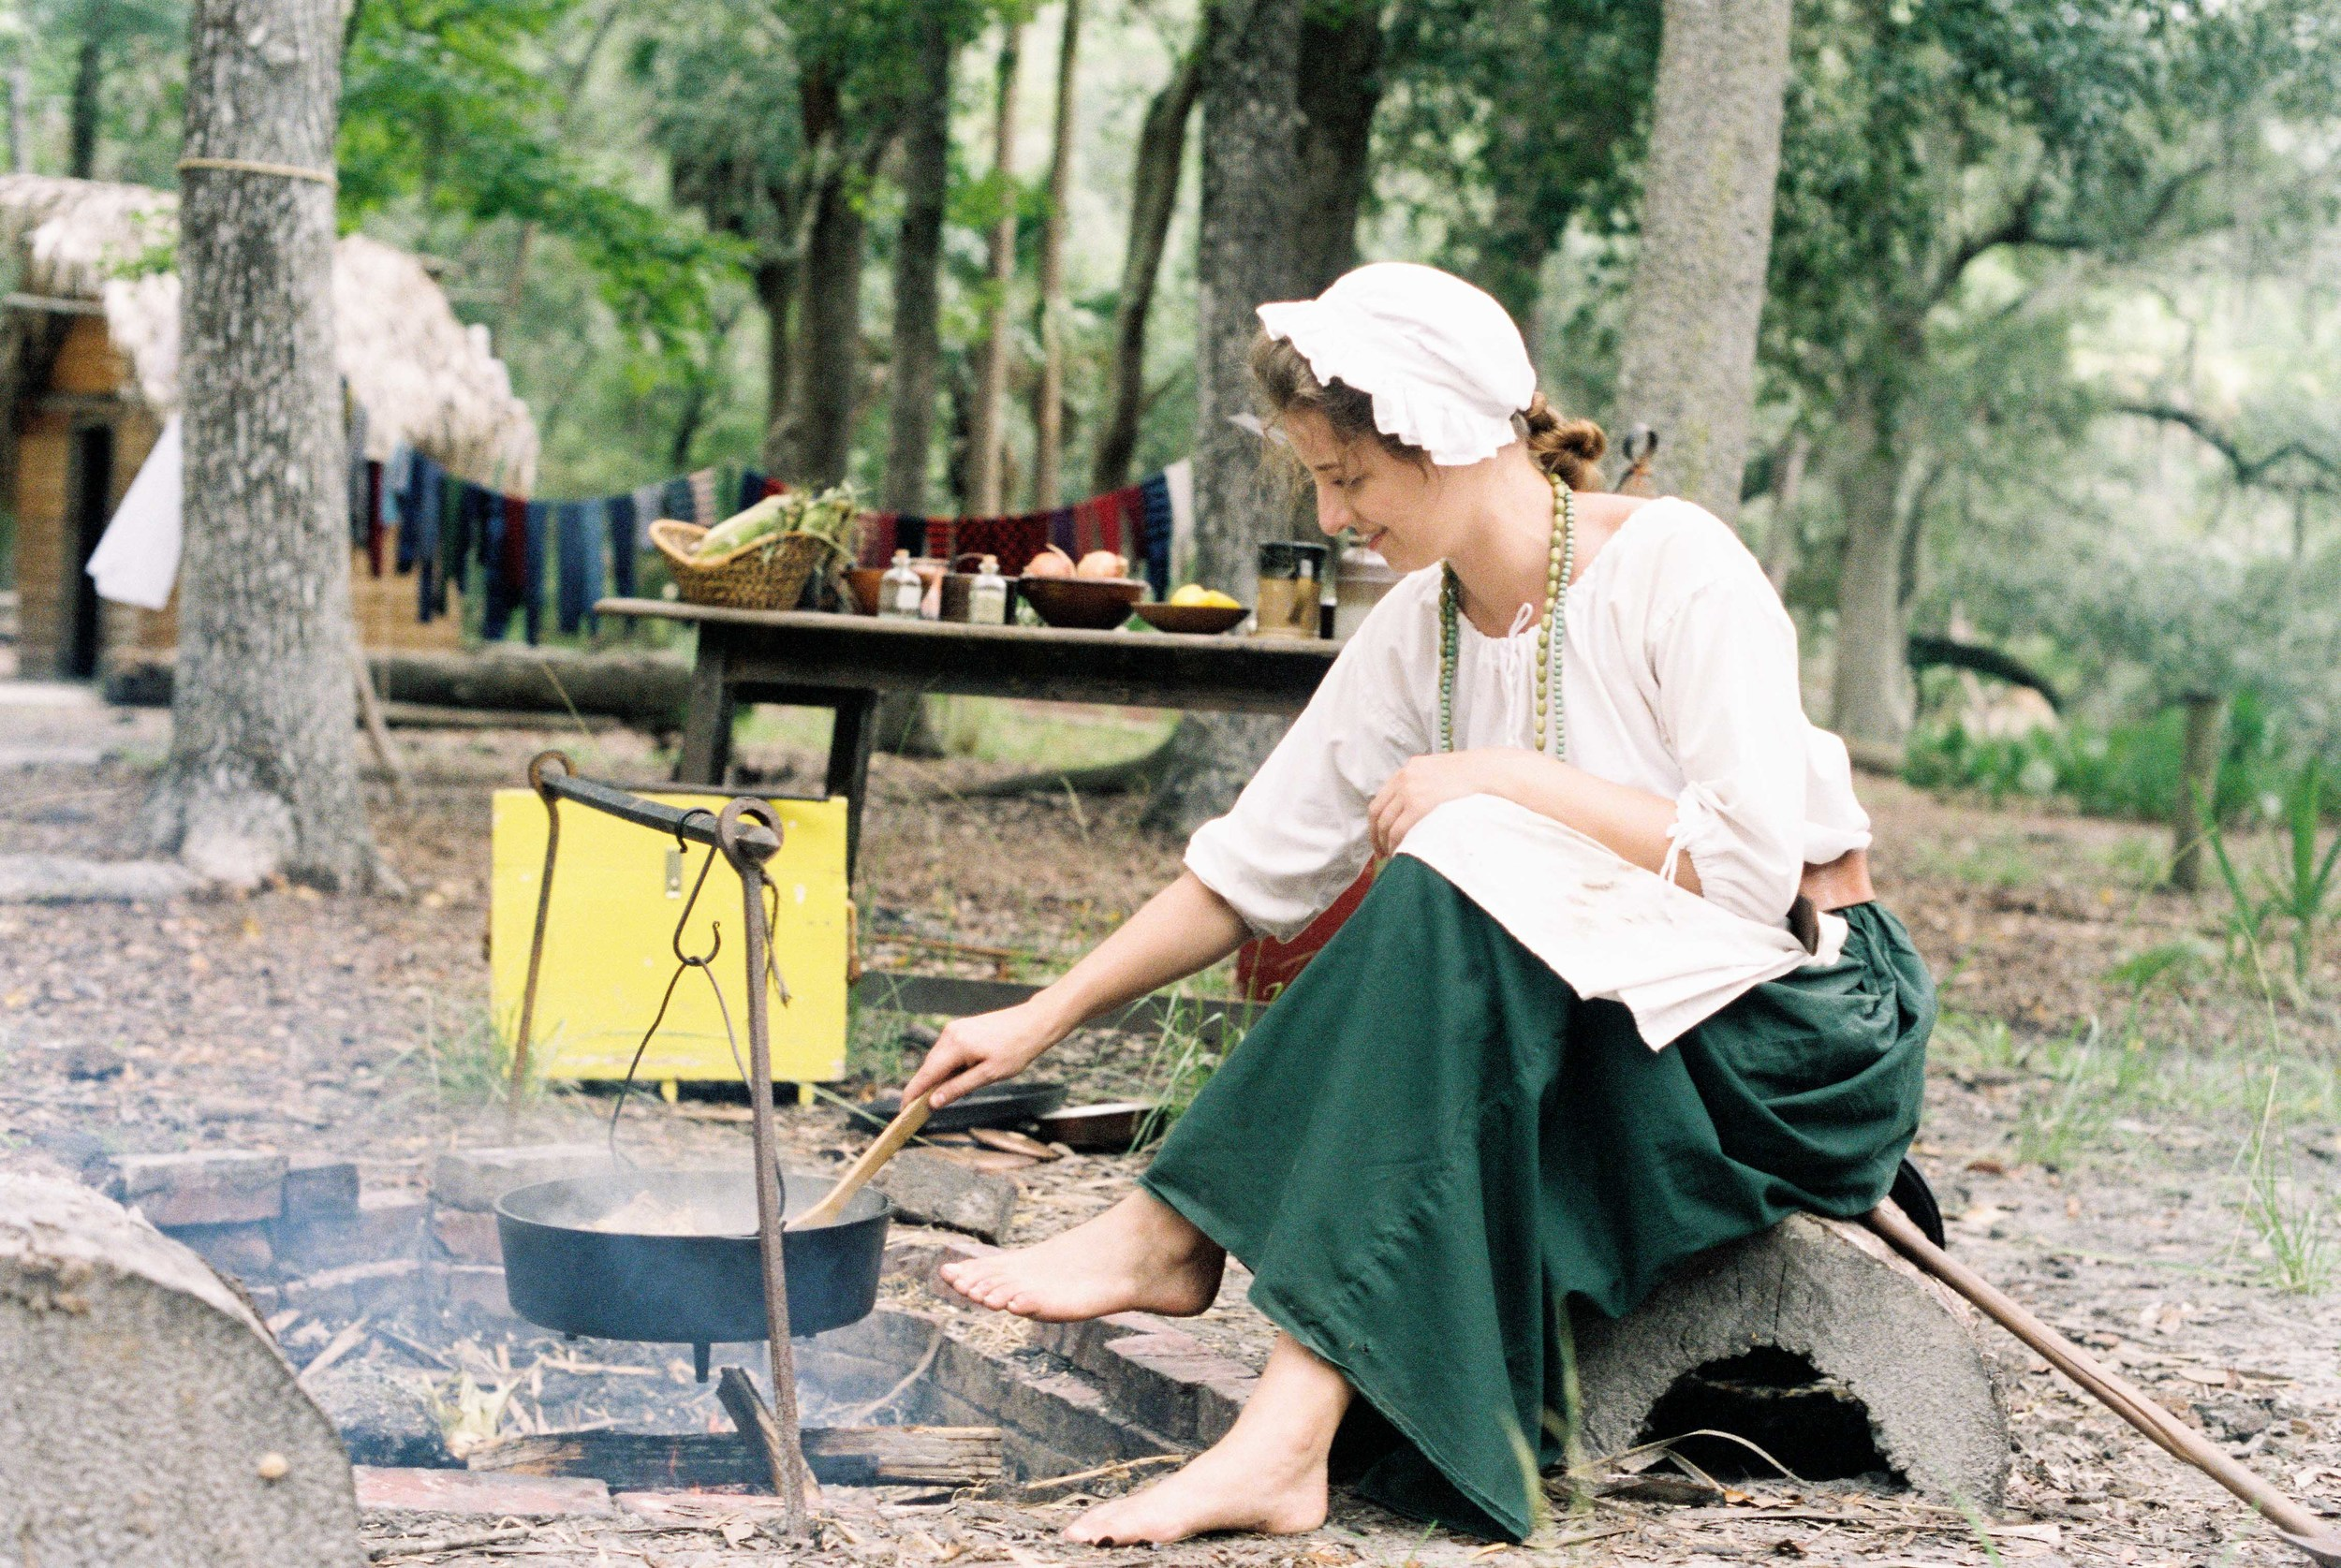 A colonial woman brewing a traditional vegetable stew.